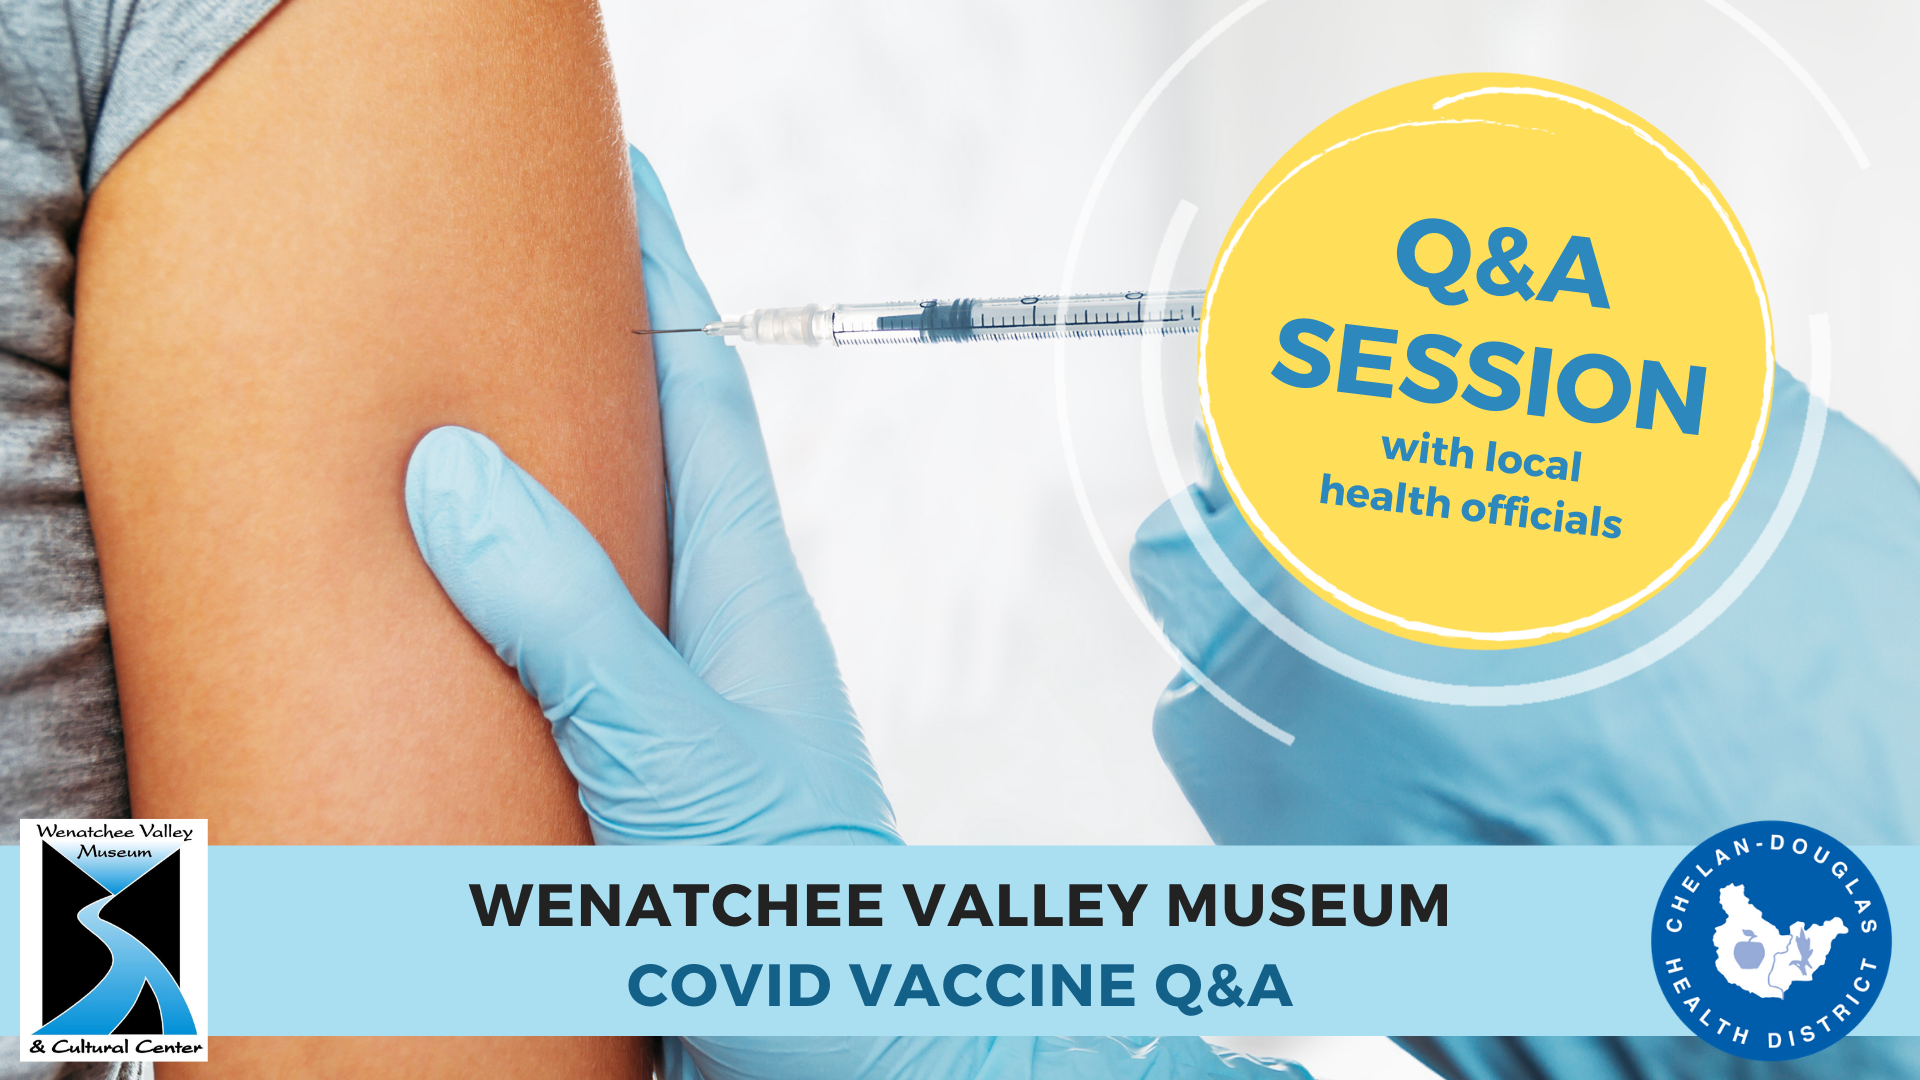 Covid Vaccine Q&A Session